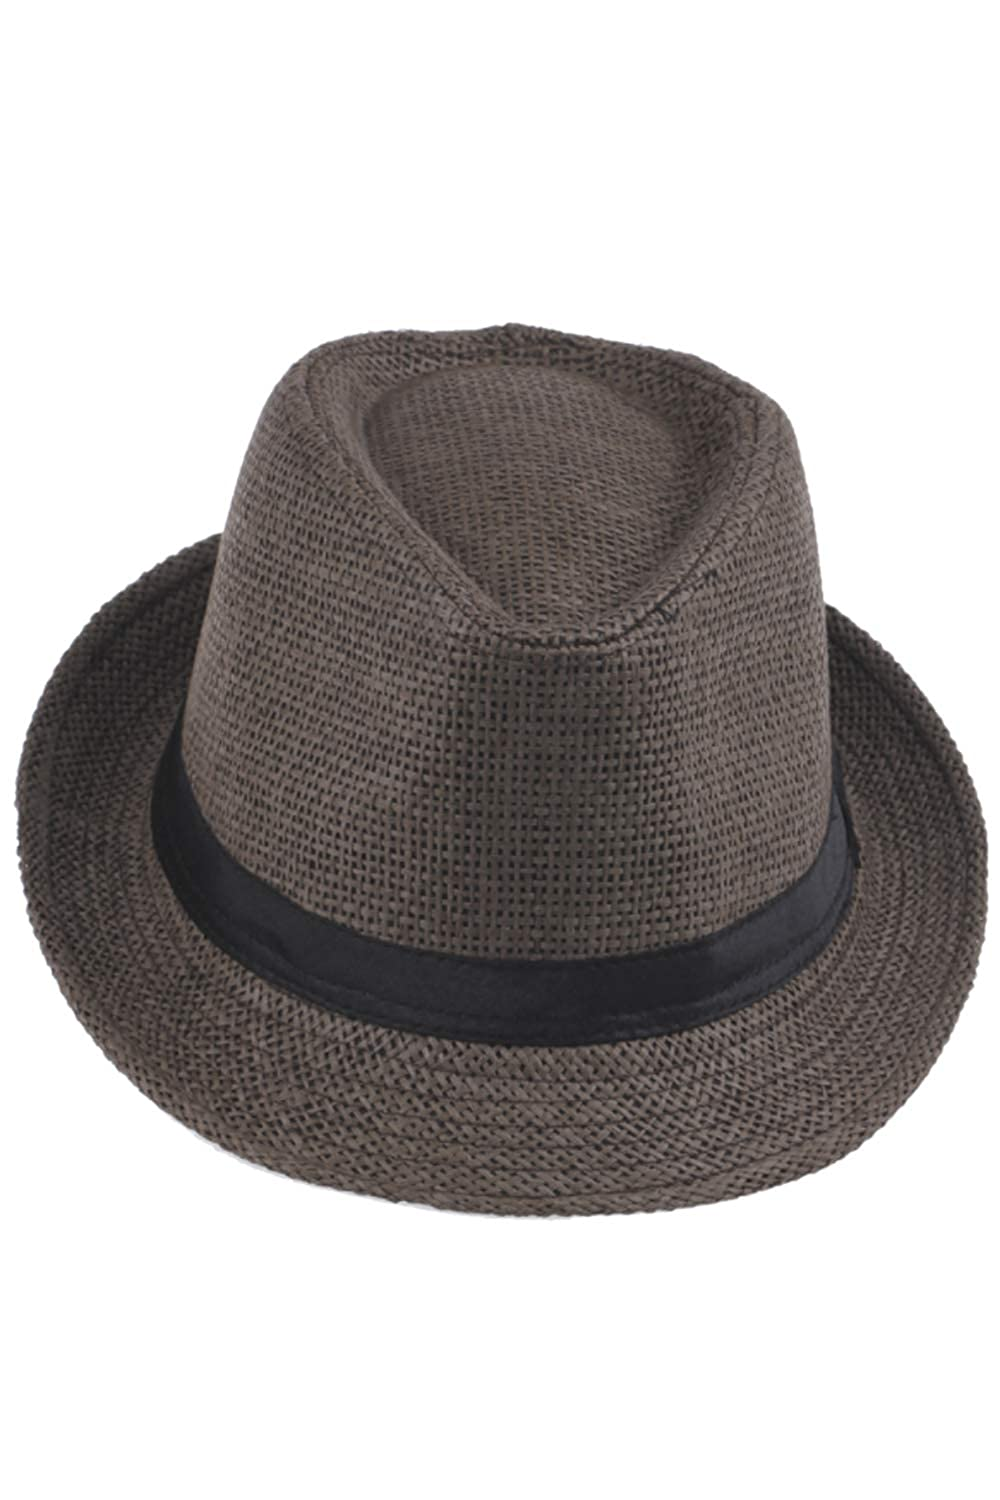 Jomuhoy Men Summer Straw Beach Hat Short Brim Panama Sunhat Fedora Caps with Band CAJOM453-Beige-F